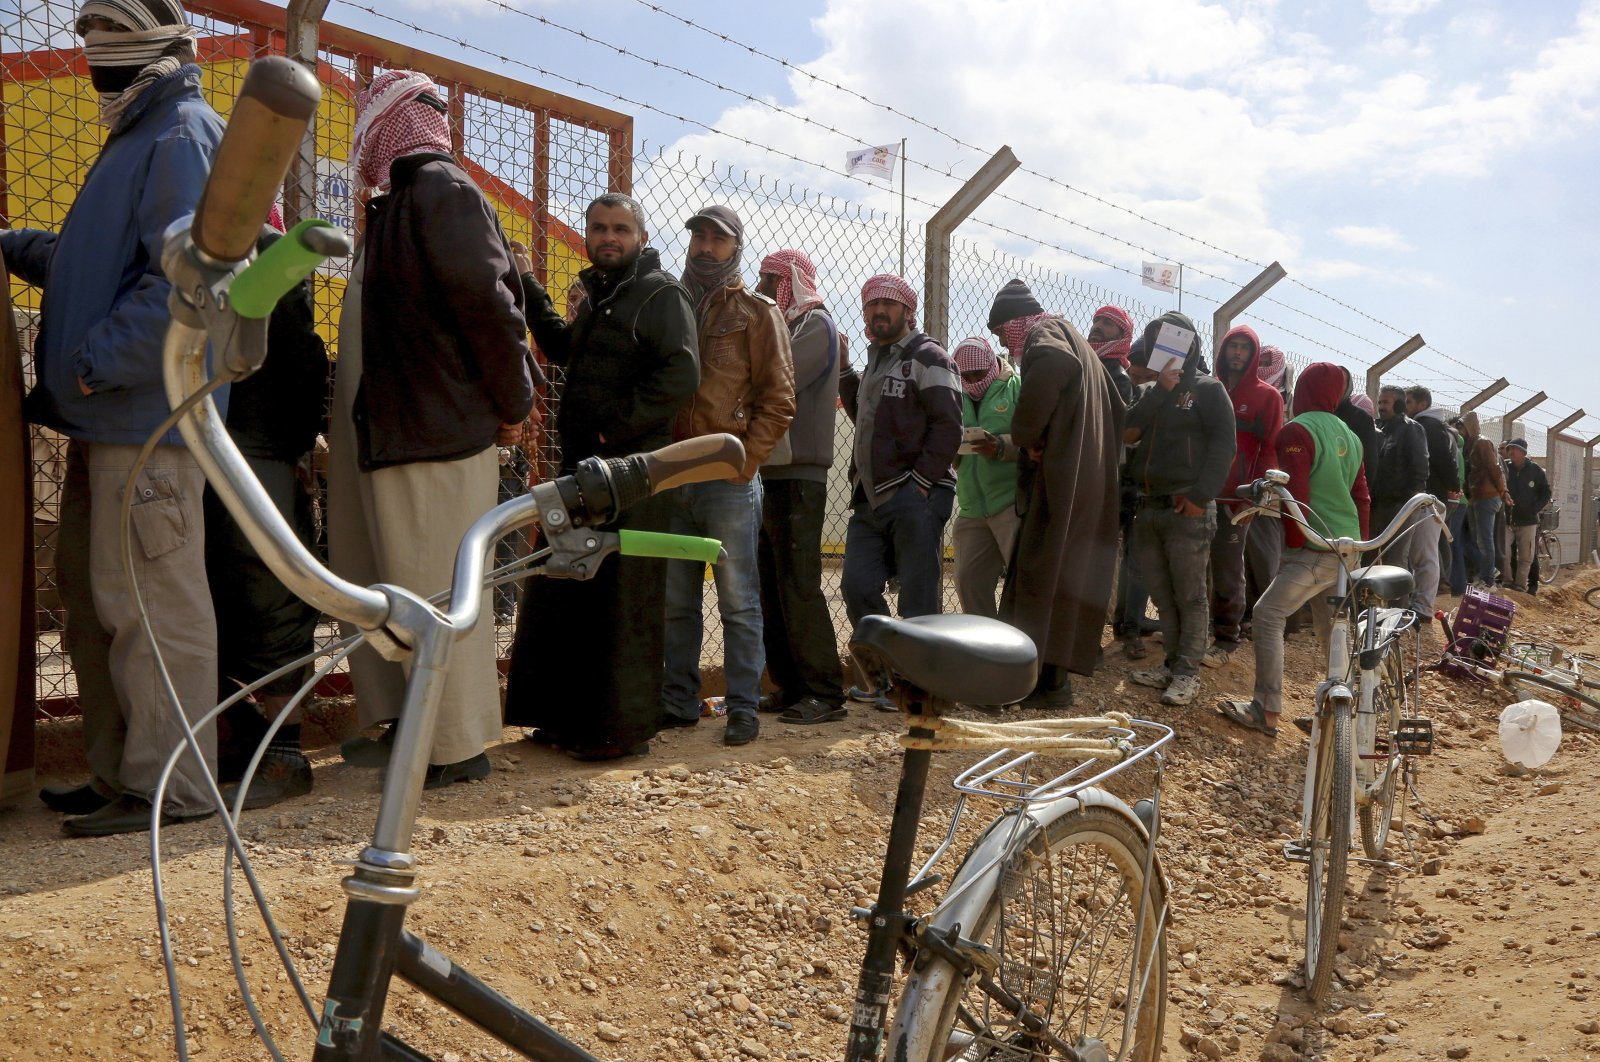 Syrian refugees line up to register their names at an employment office, at the Azraq Refugee Camp, 100 kilometers (62 miles) east of Amman, Jordan, Feb. 18, 2018. (AP Photo)